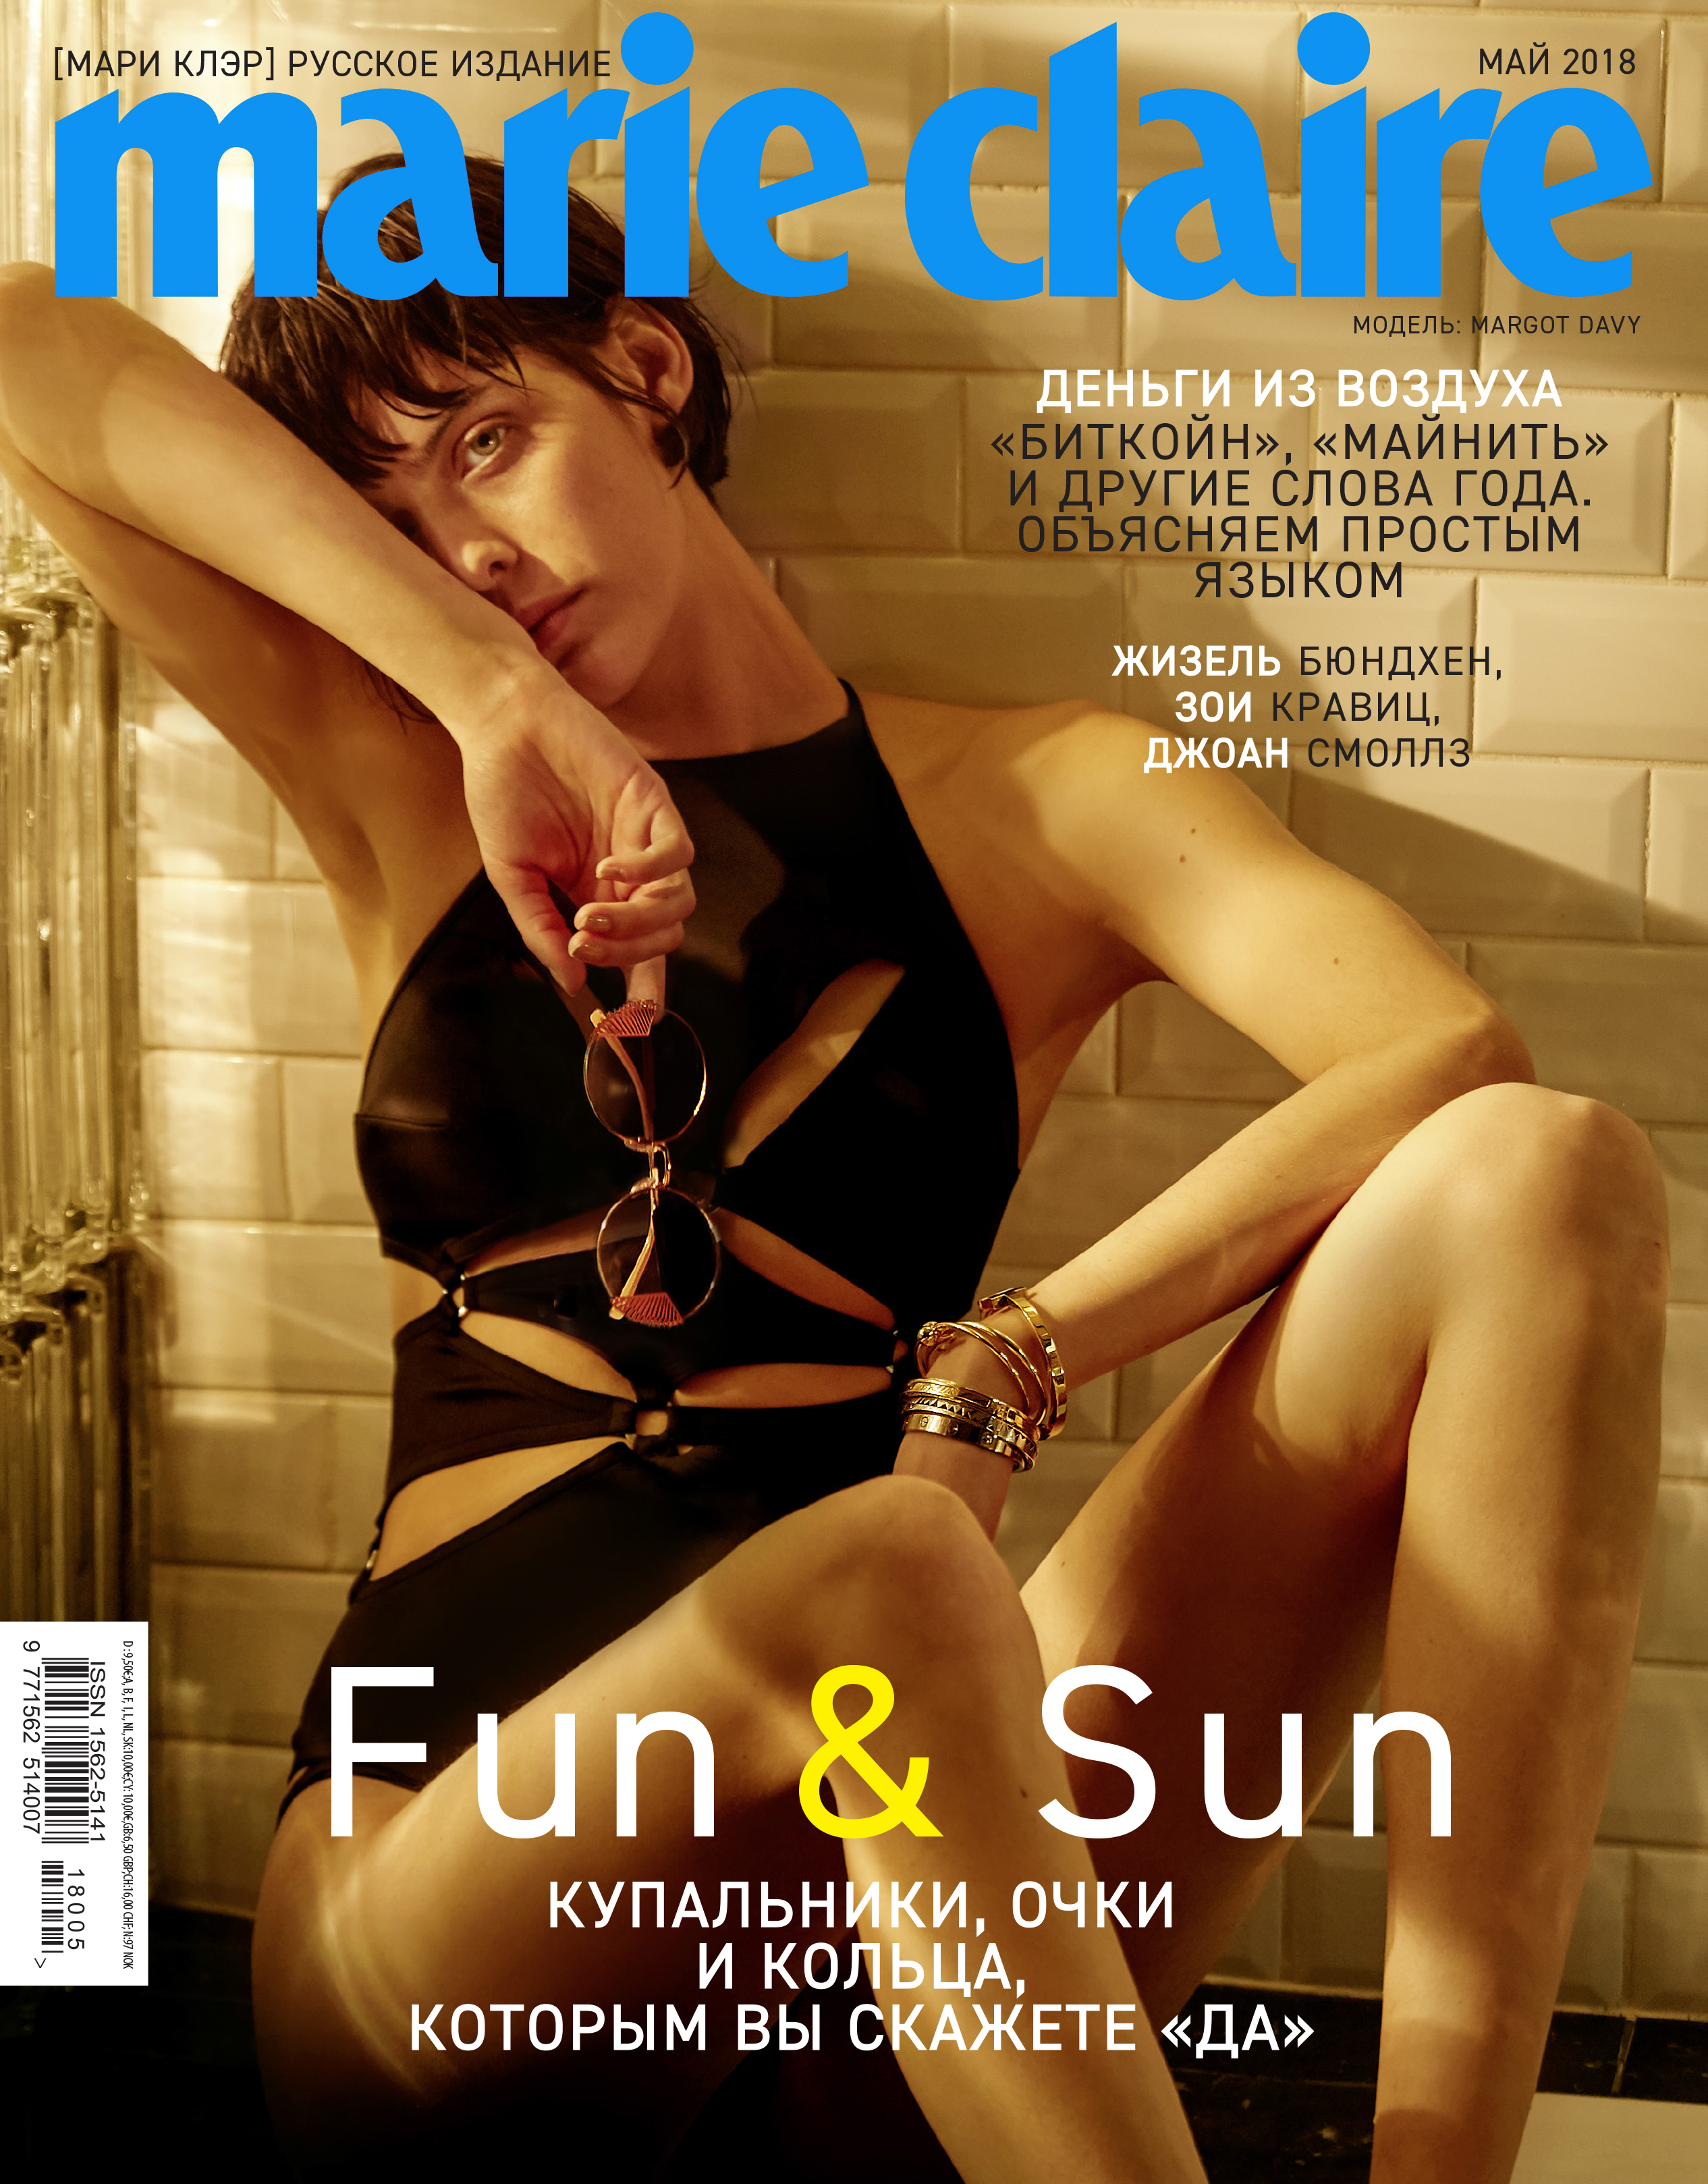 Marie-Claire Russia - May cover